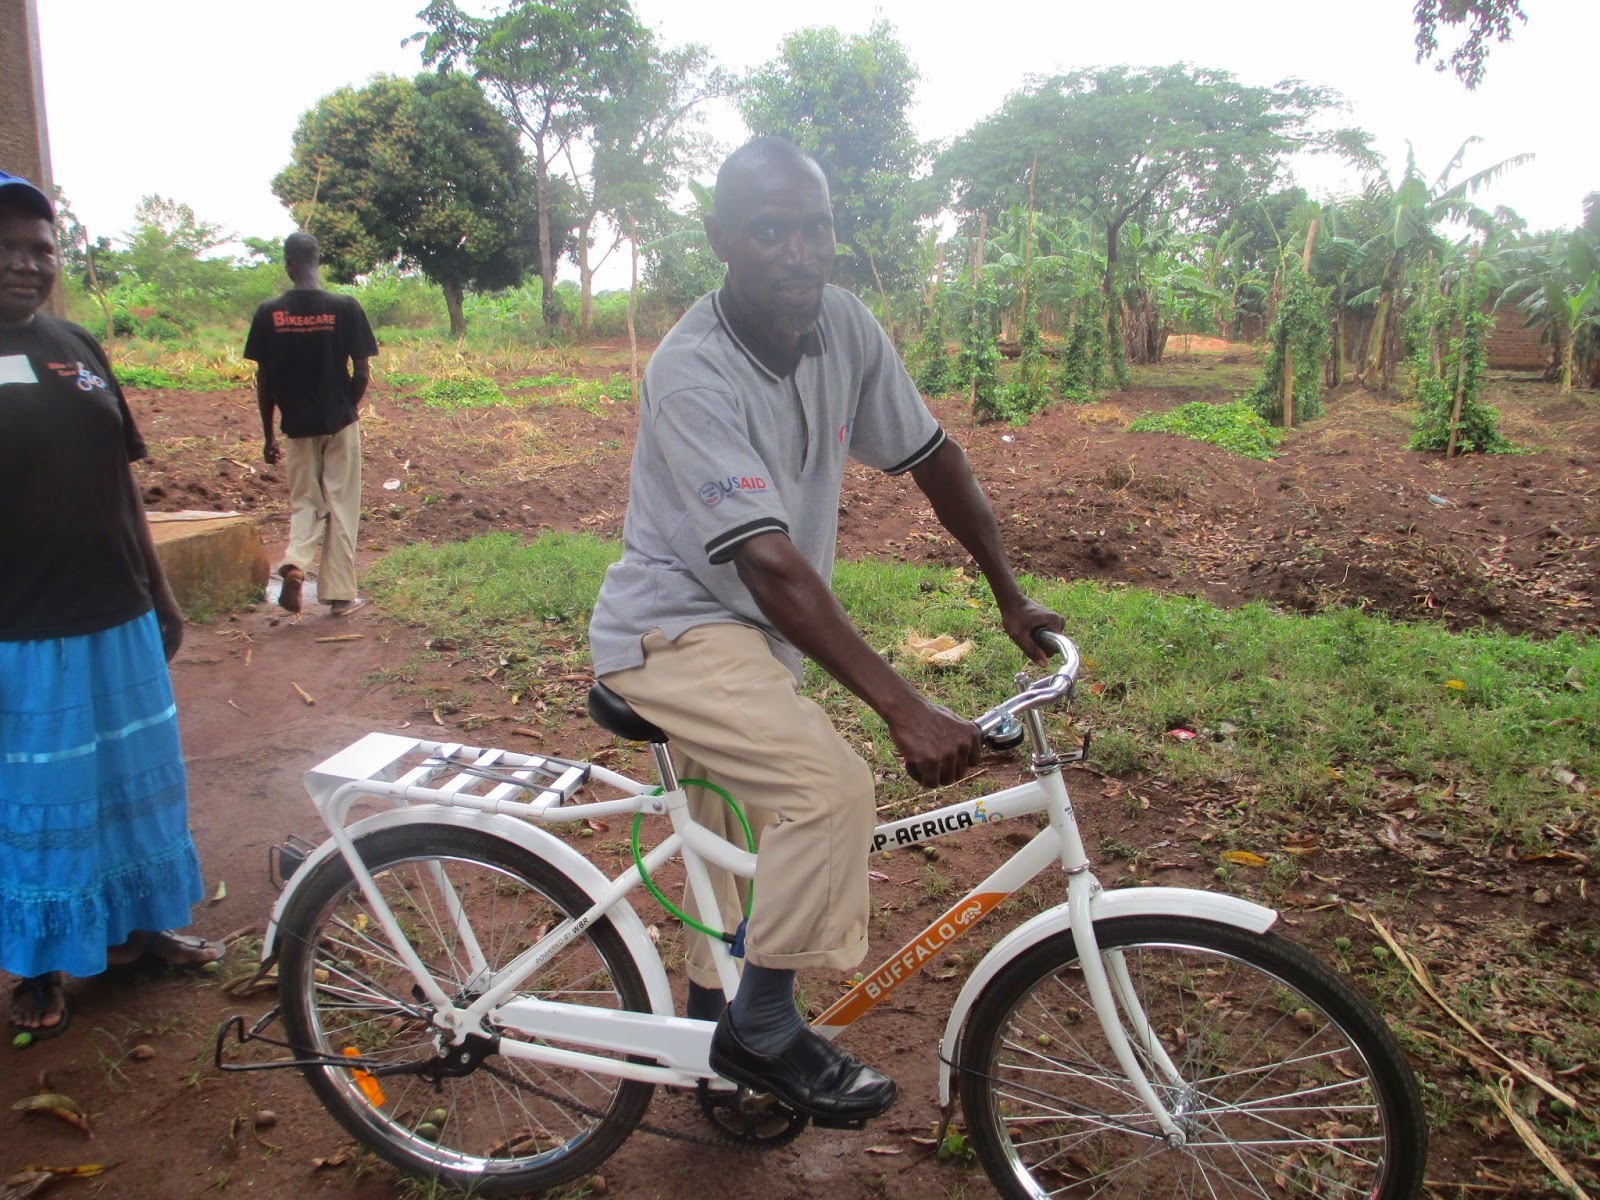 uganda village project The uganda village project is a nonprofit organization that collaborates with diverse partners on the design of sustainable rural health and development solutions through networking, advocacy and project innovation in iganga district.